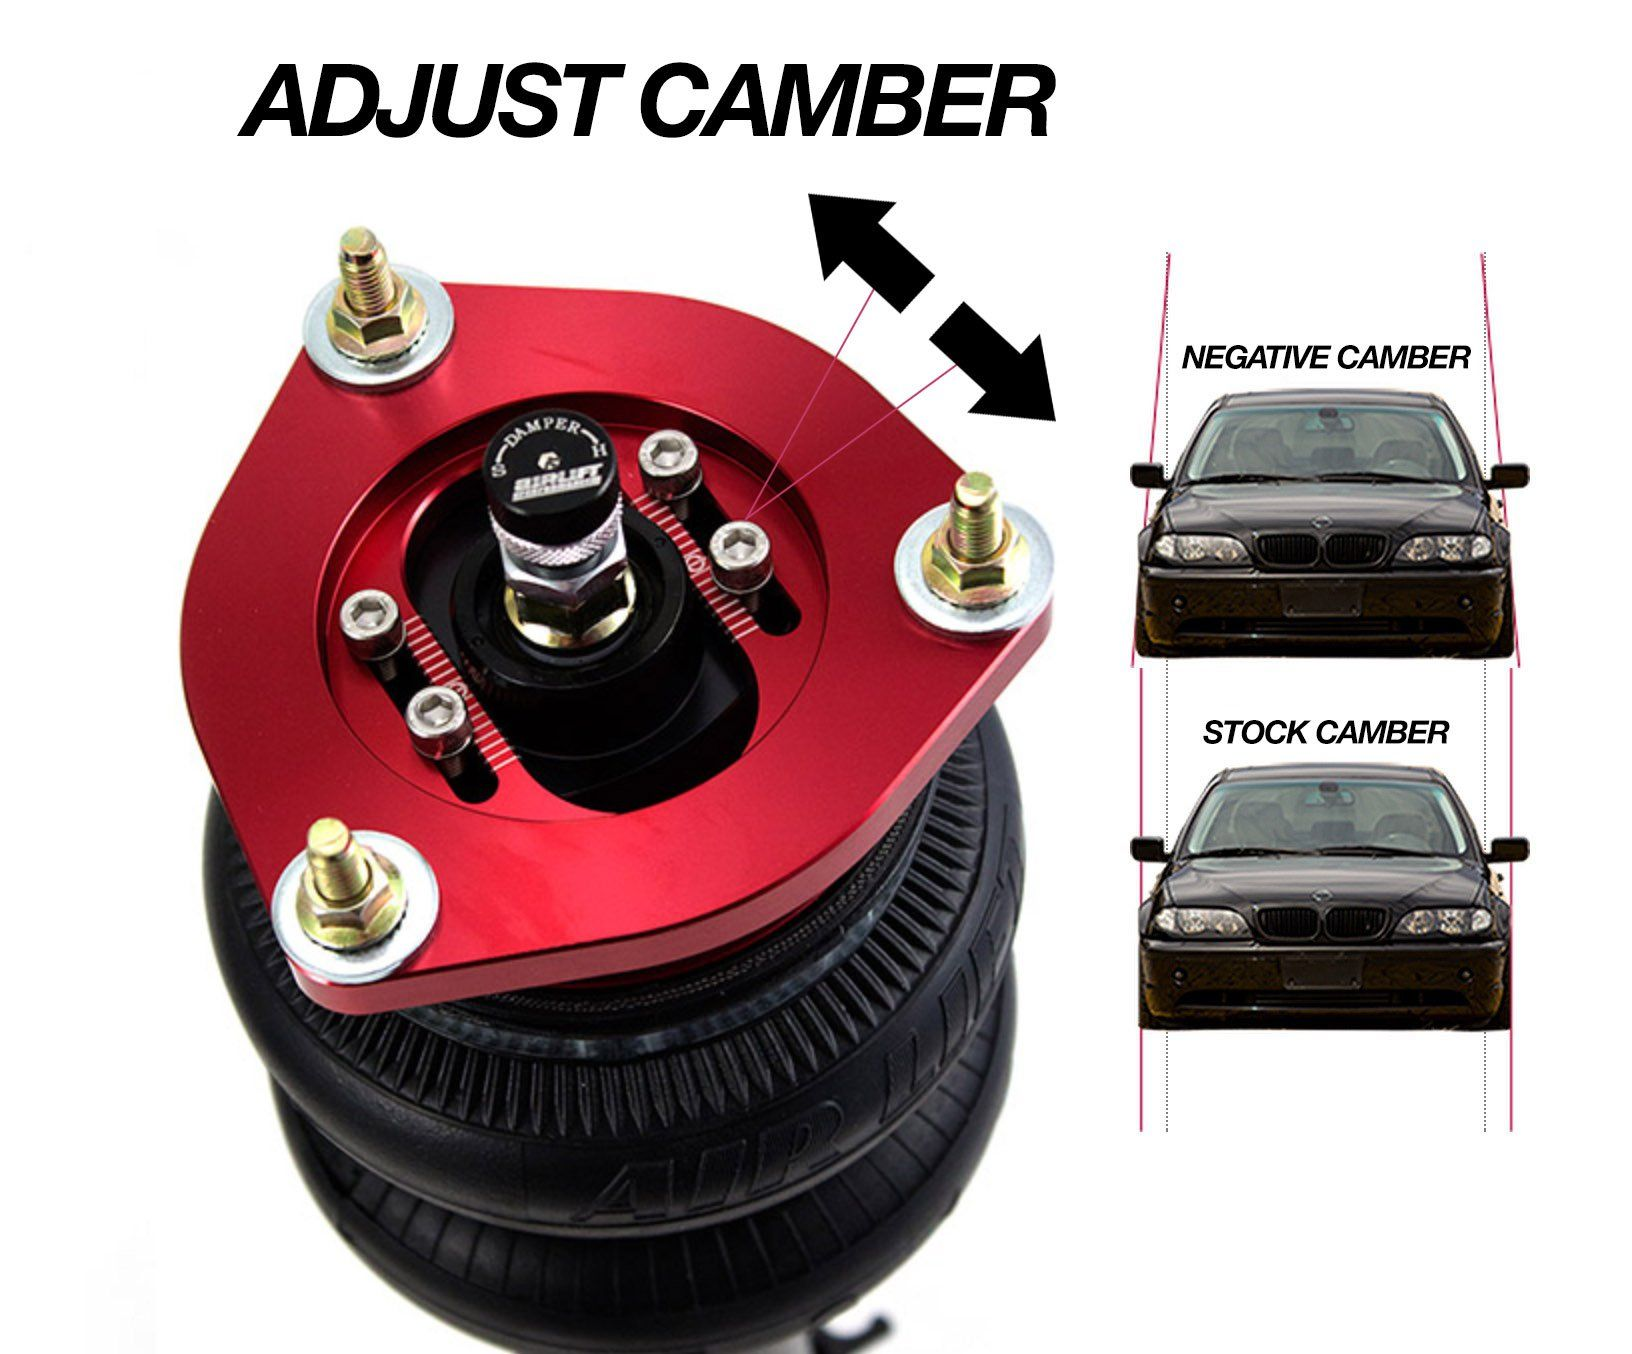 Adjustable Camber Top Mounts Cute Cars Air Ride Coilovers